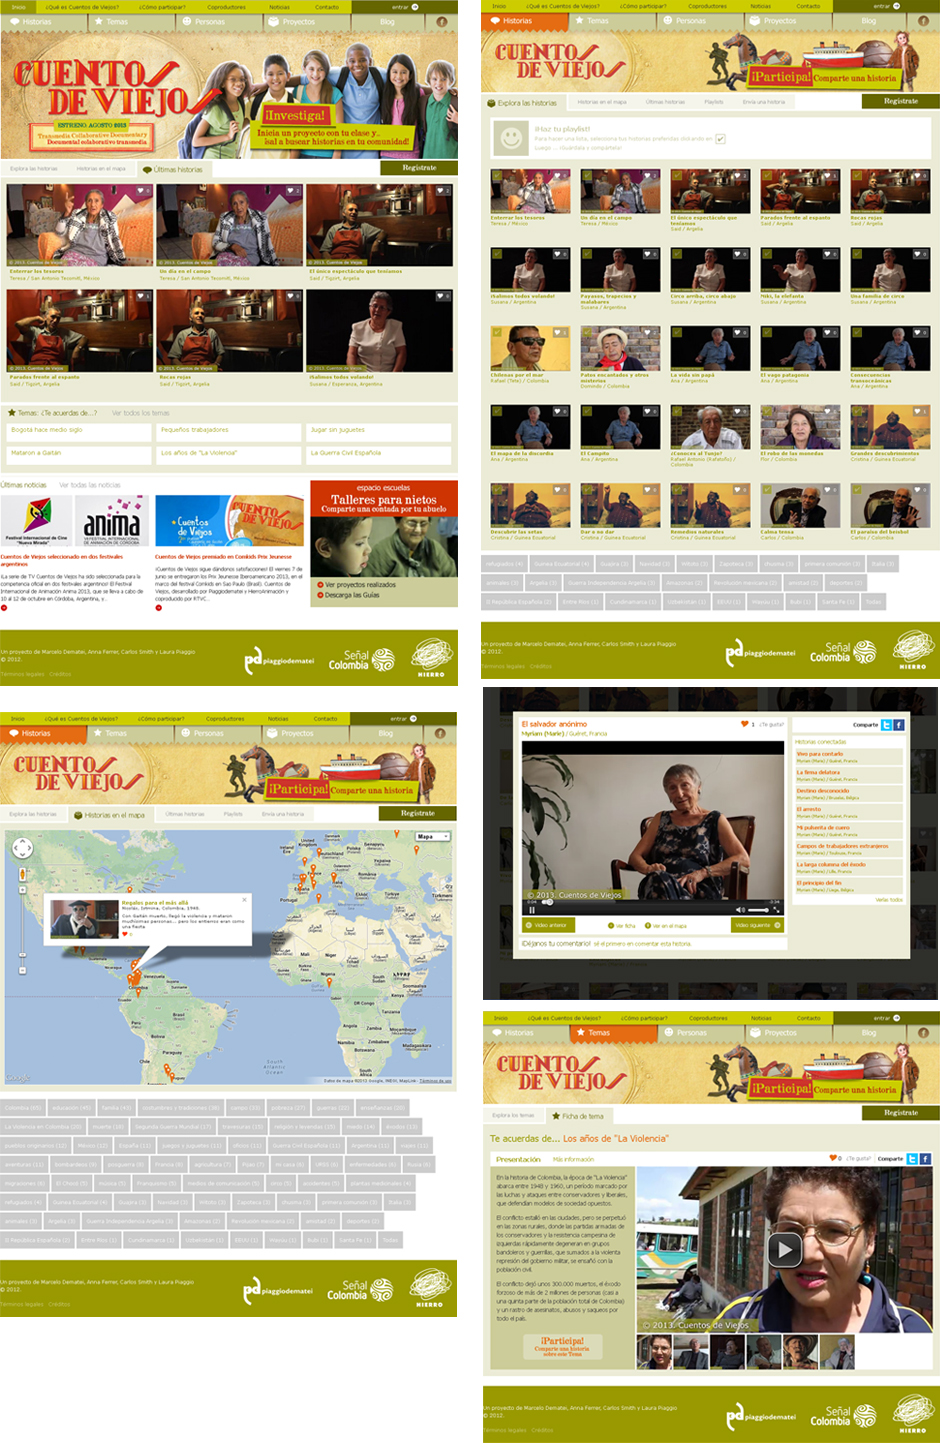 Cuentos de viejos collaborative webdoc